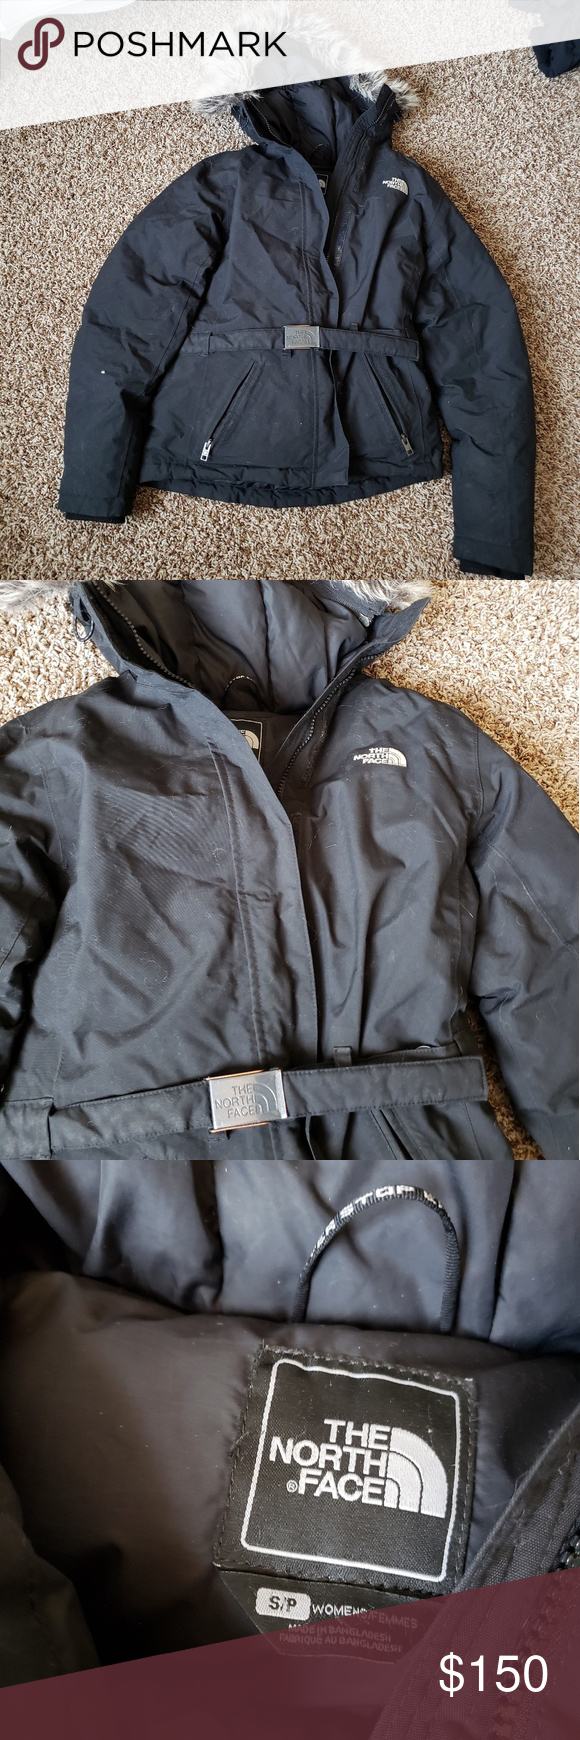 North Face Winter Coat Winter Coat With Faux Fur Hood And Belted Buckle Detail Super Warm The North Fa North Face Winter Coat Faux Fur Hood Clothes Design [ 1740 x 580 Pixel ]